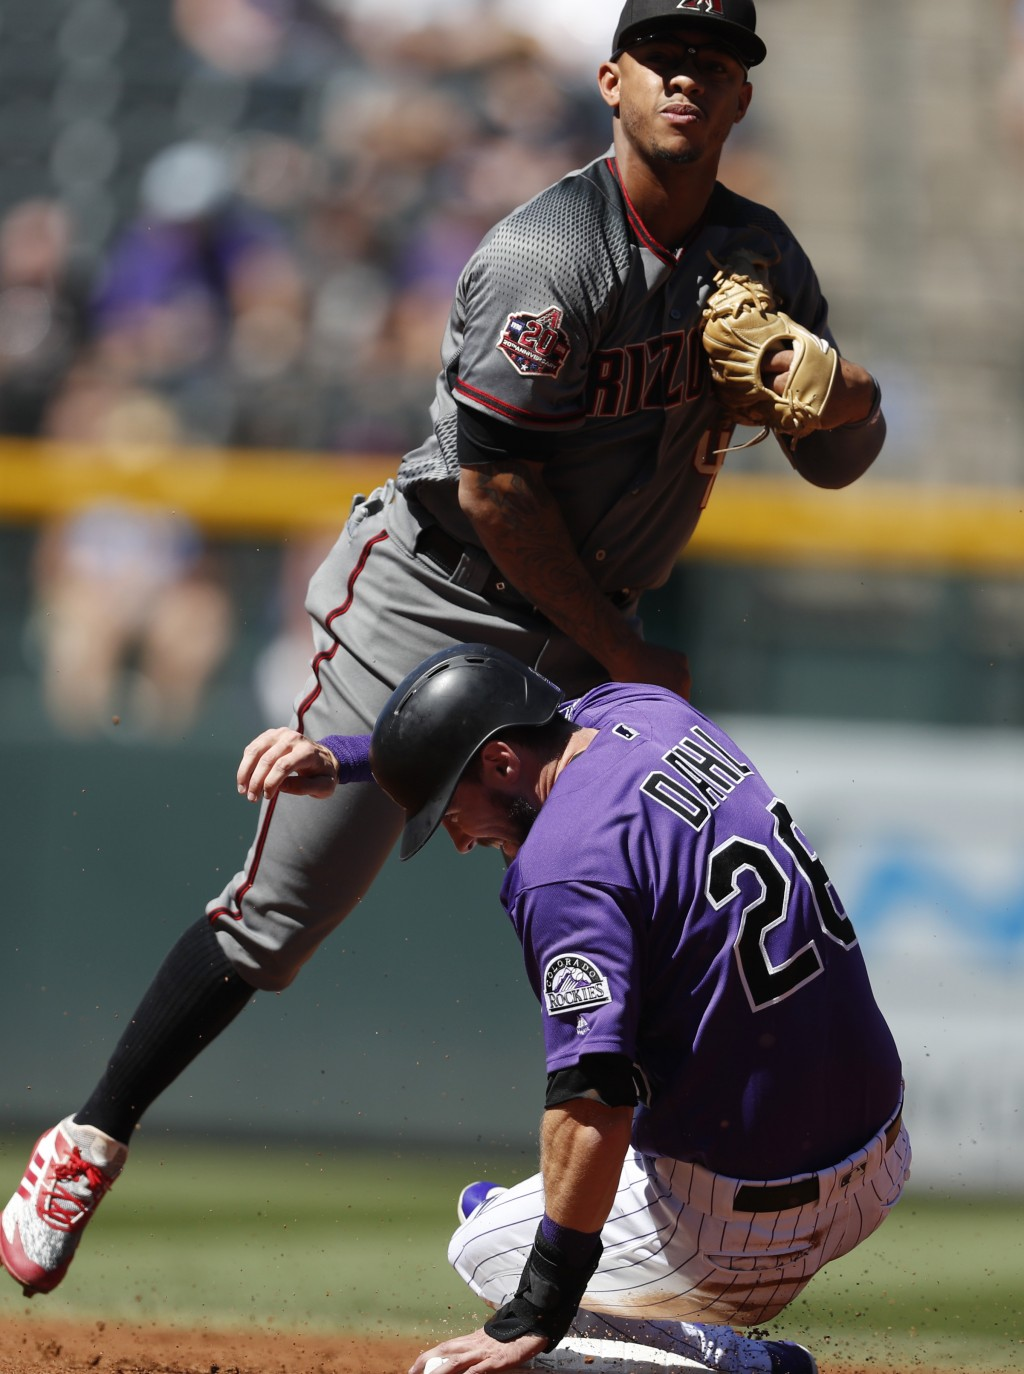 Arizona Diamondbacks shortstop Ketel Marte throws over Colorado Rockies' David Dahl after forcing him out at second base on the front end of a double